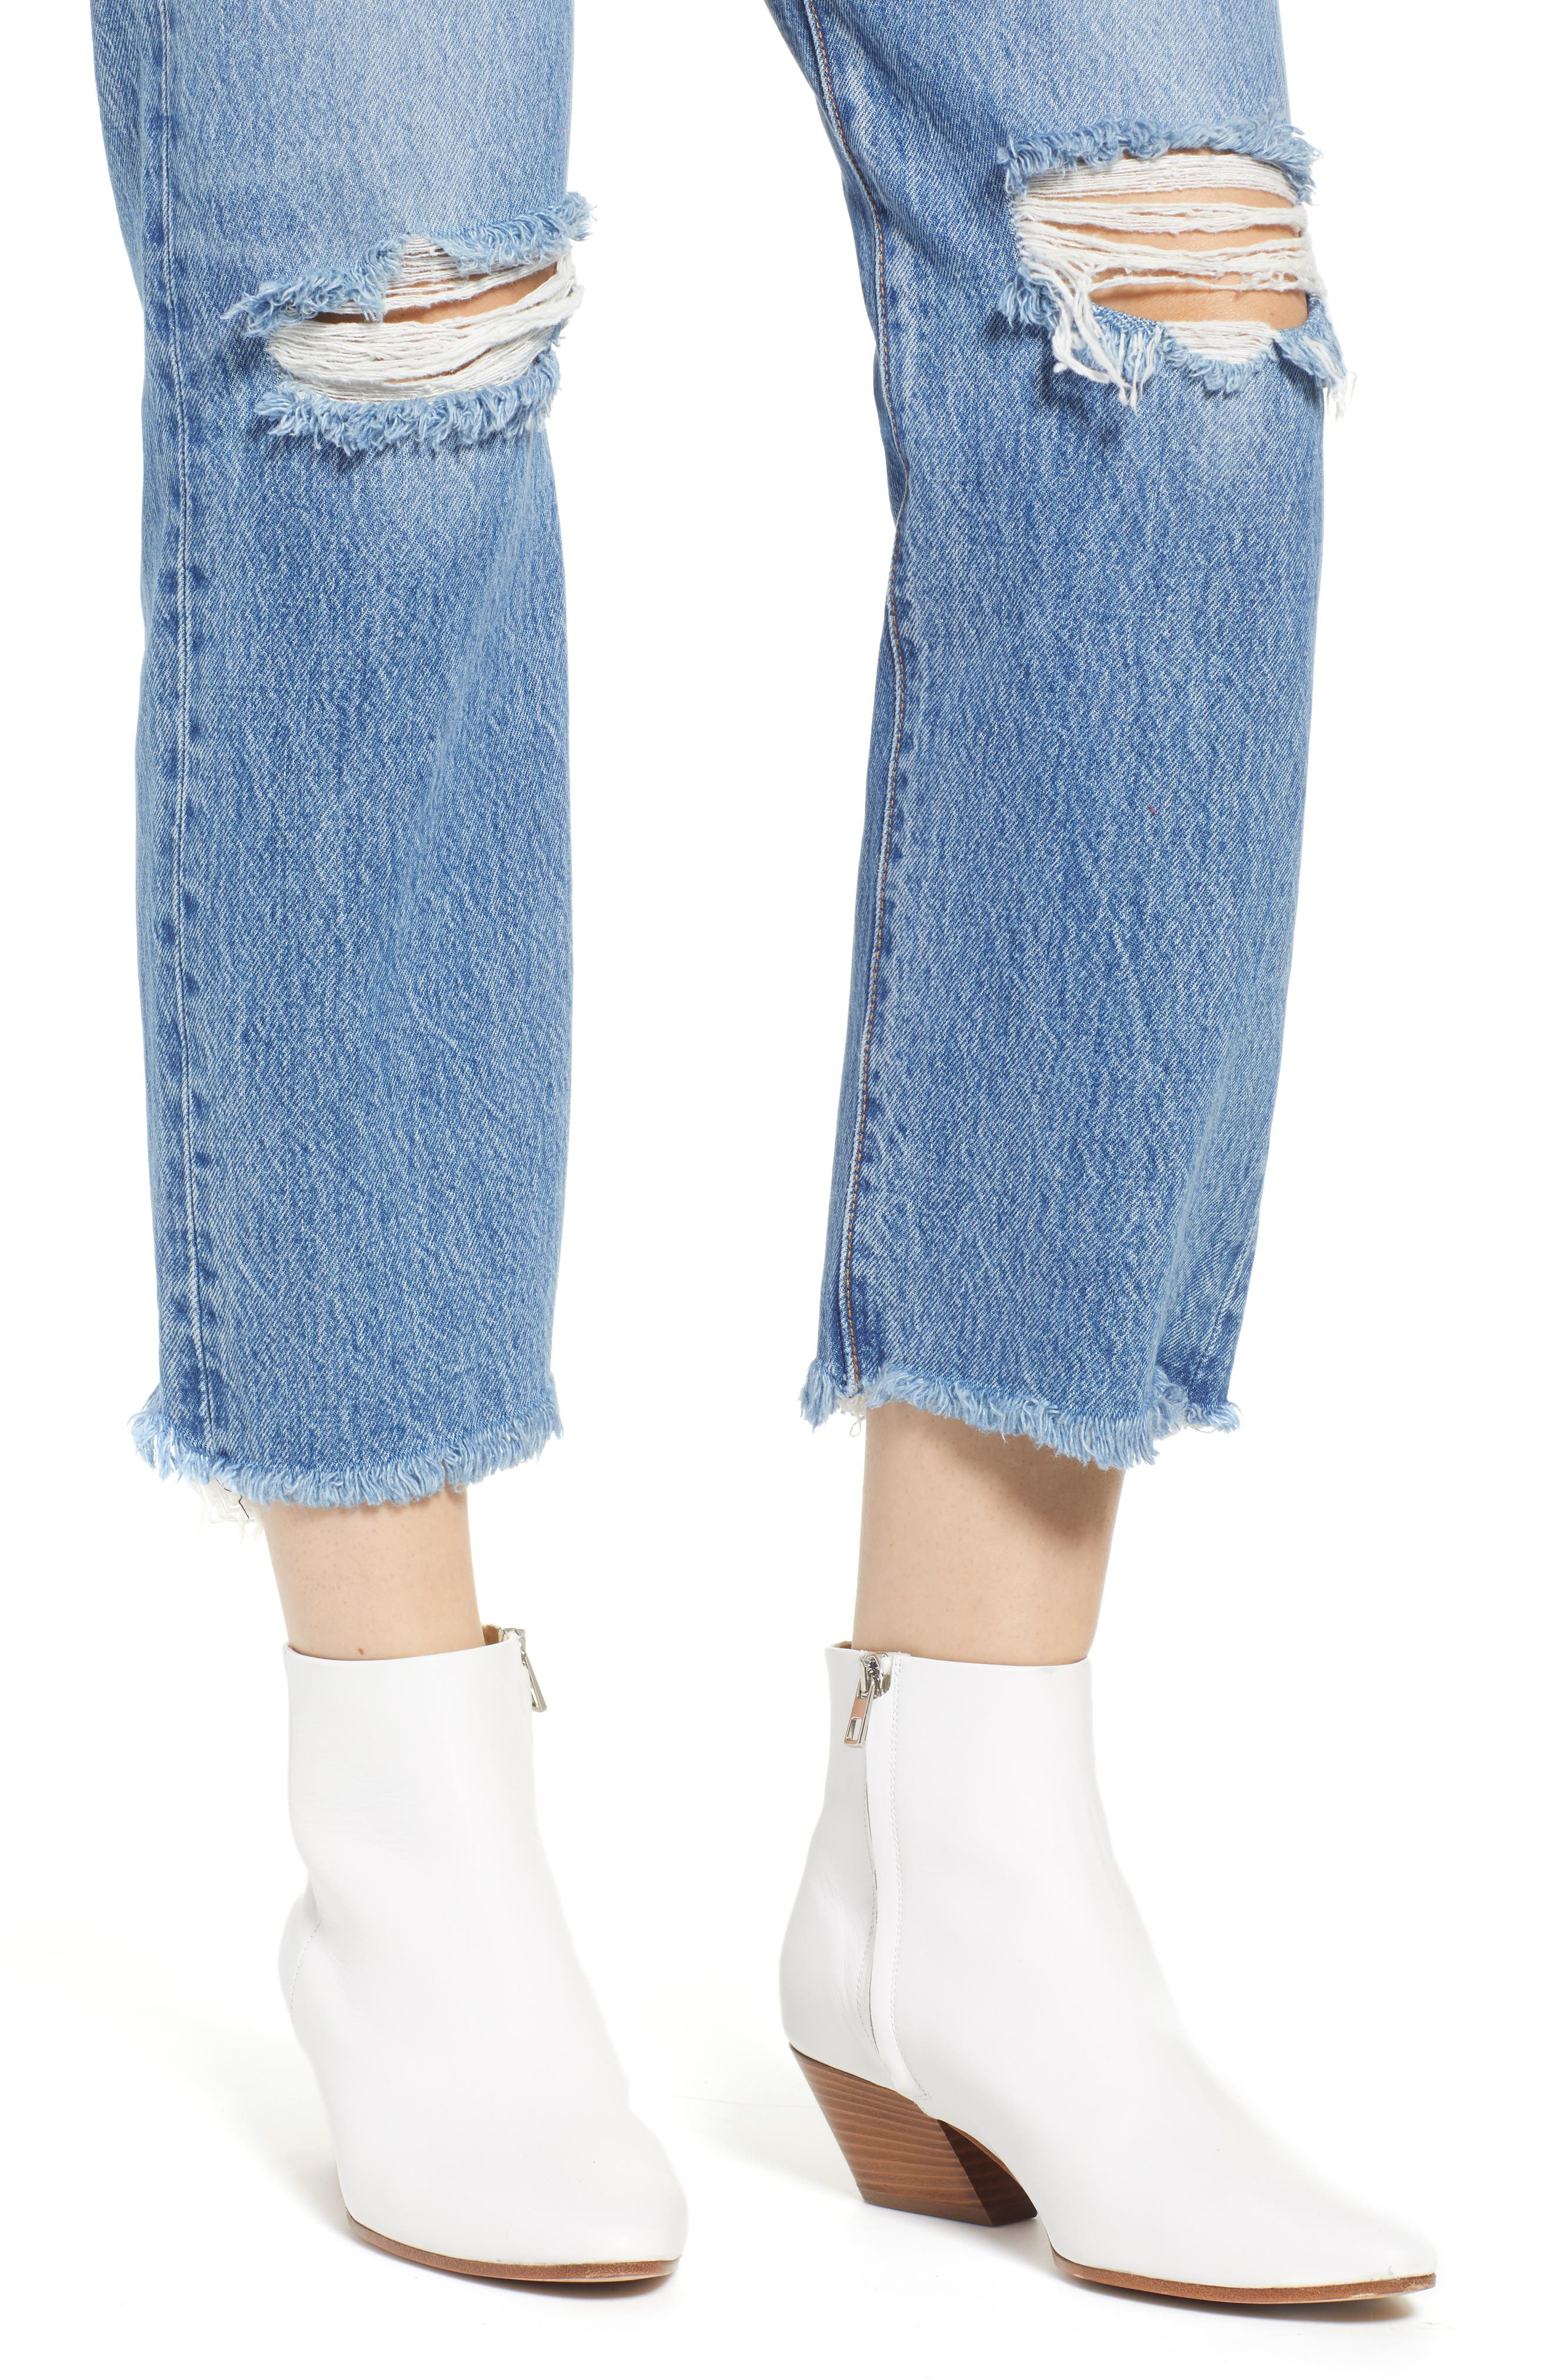 LEVI'S<SUP>®</SUP>, Wedgie High Waist Ripped Crop Straight Leg Jeans, Alternate thumbnail 5, color, UNCOVERED TRUTH